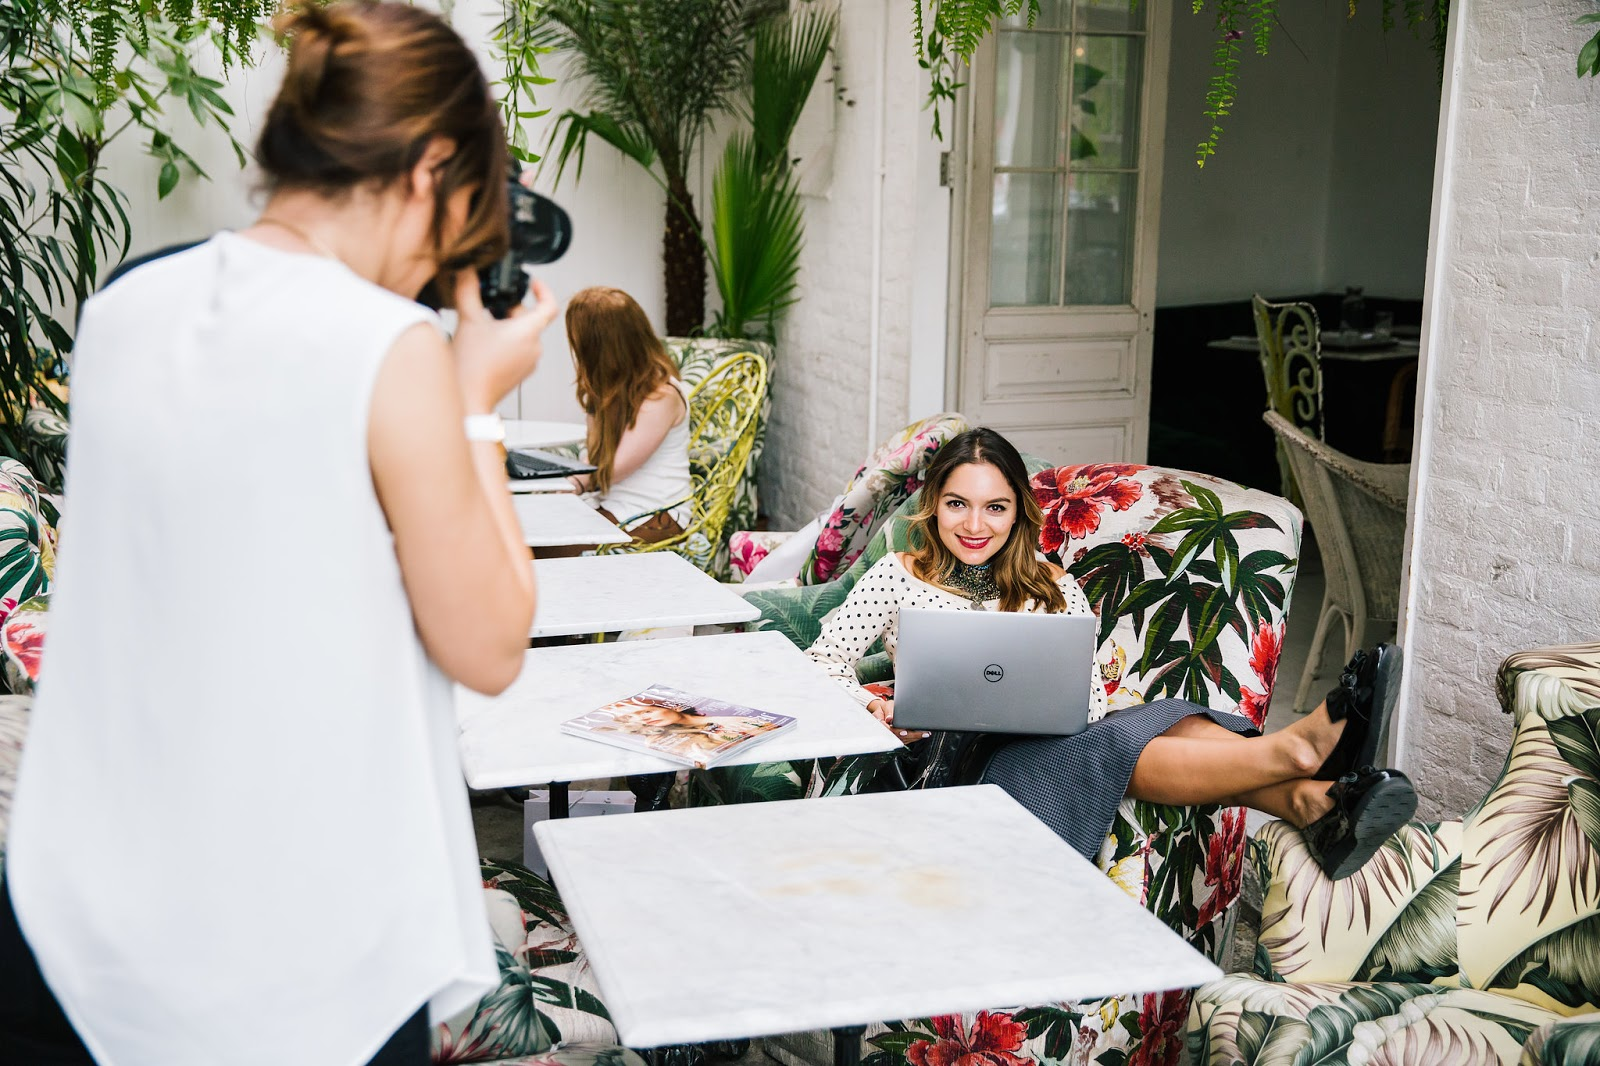 Whitney's Wonderland's Whitney Valverde UK Top Luxury Lifestyle blog shares 5 tips to take your blog to the next level with Dell Laptop XPS.